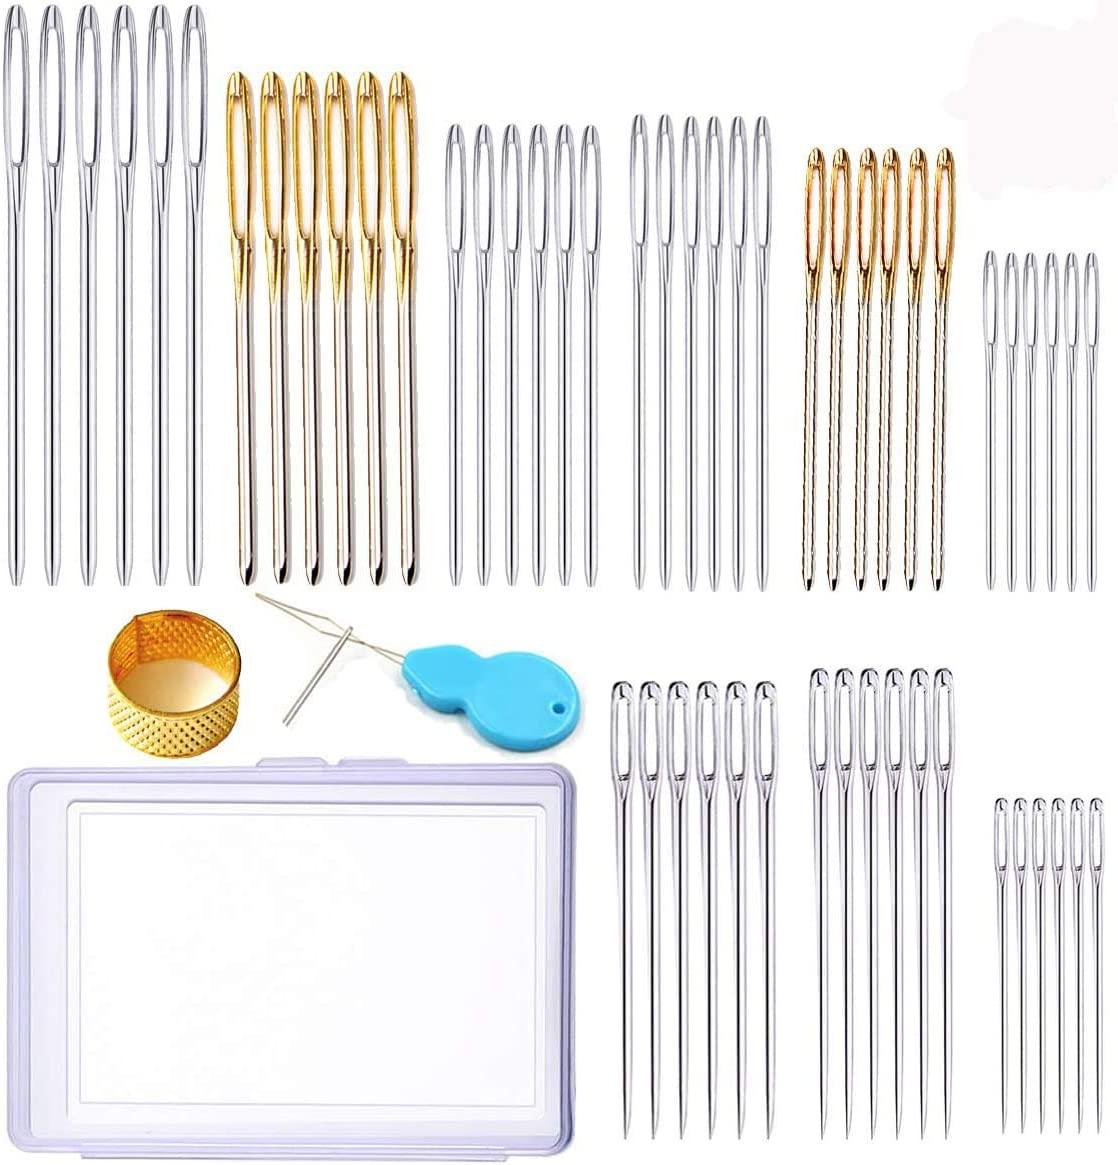 Fort Worth Mall Y-Axis 54 Pcs Assorted Large Eye Sale N Hand Stitching Needles Sewing